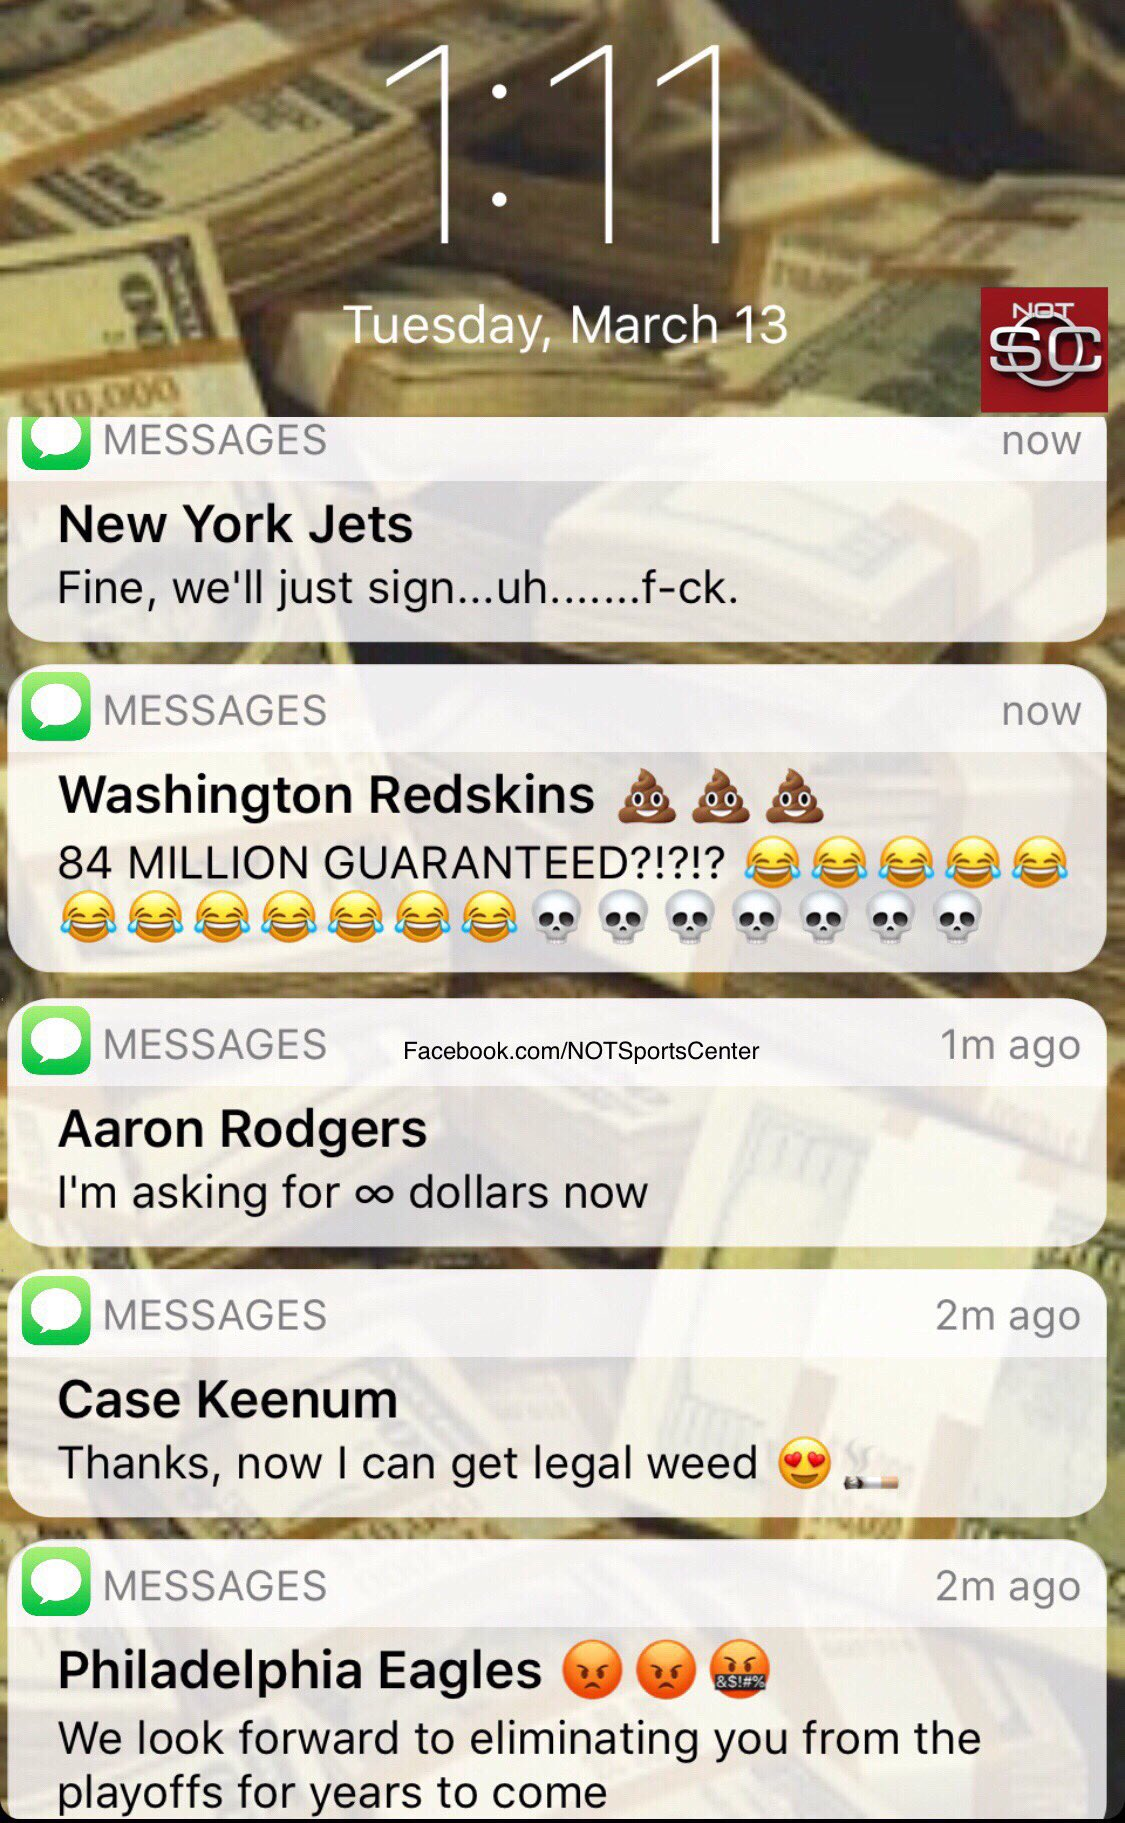 Kirk Cousins' phone has been blowing up since agreeing to sign with the Vikings: https://t.co/Z8LzTqiuB0